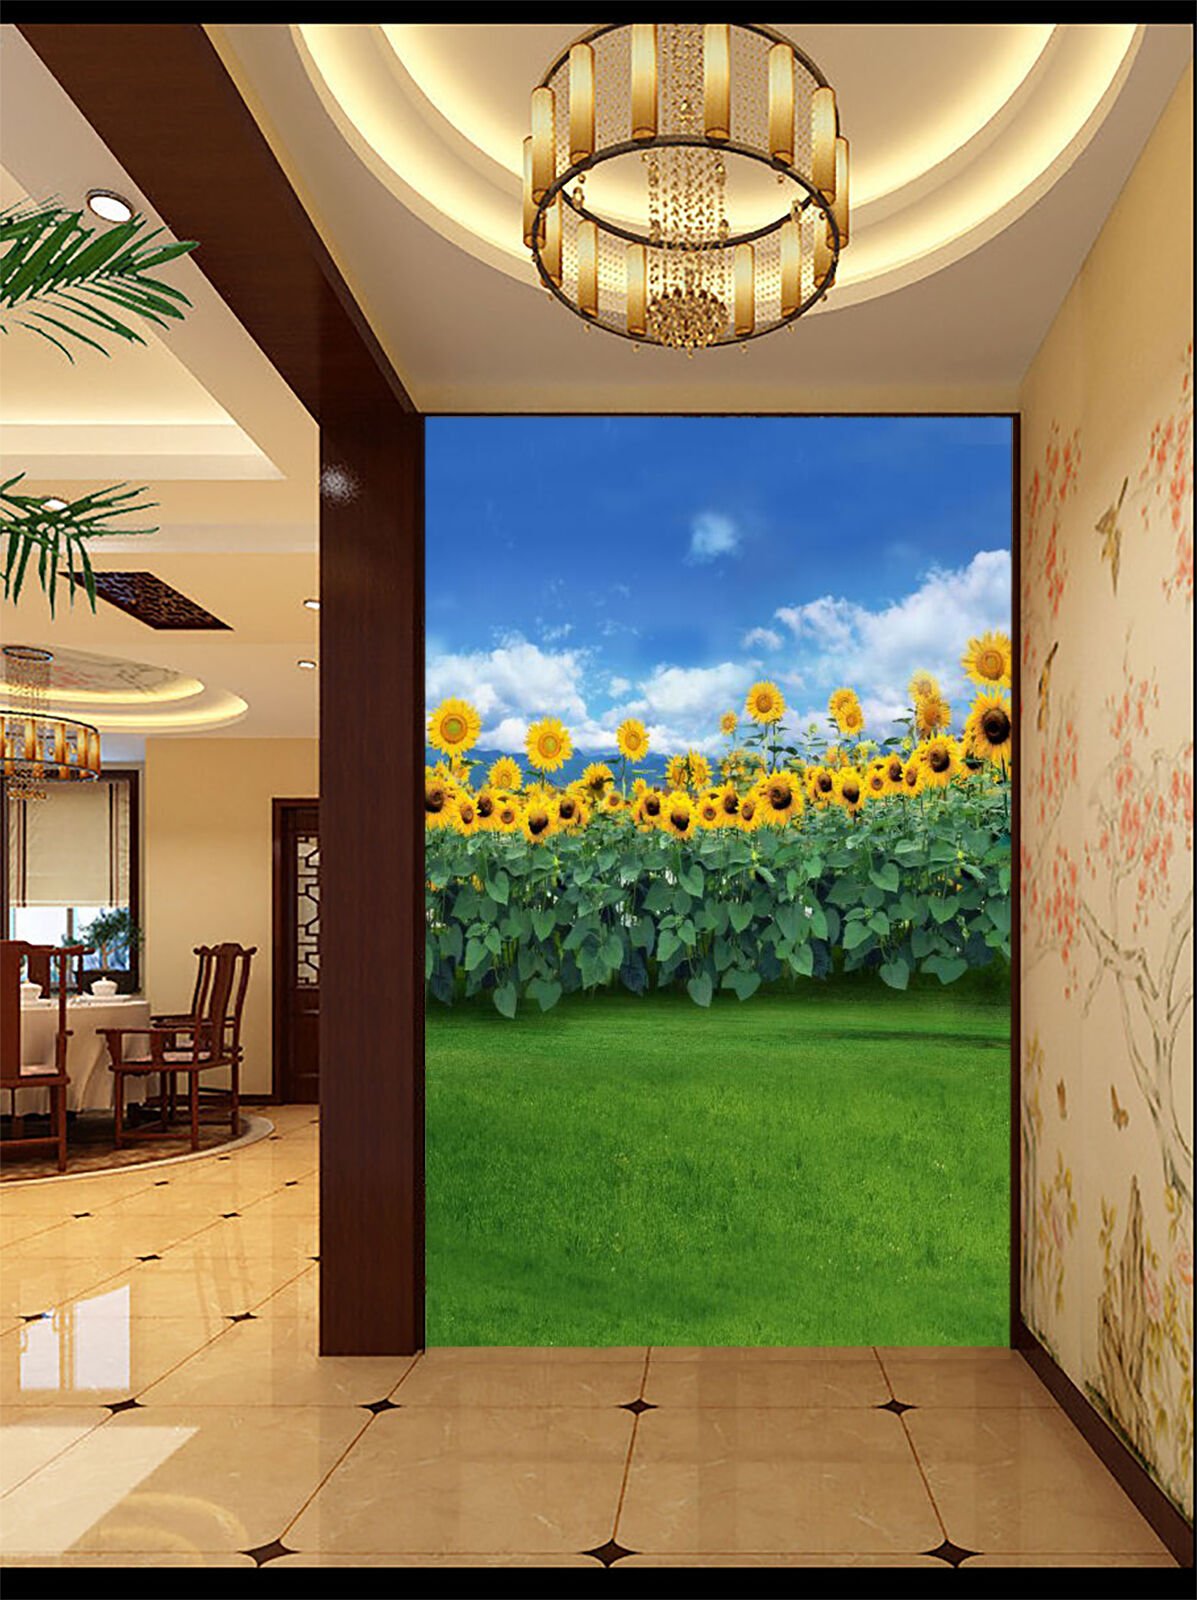 3D Grass, sunflower 36 Wand Papier Wand Drucken Decal Wand Deco Innen Wand Murals